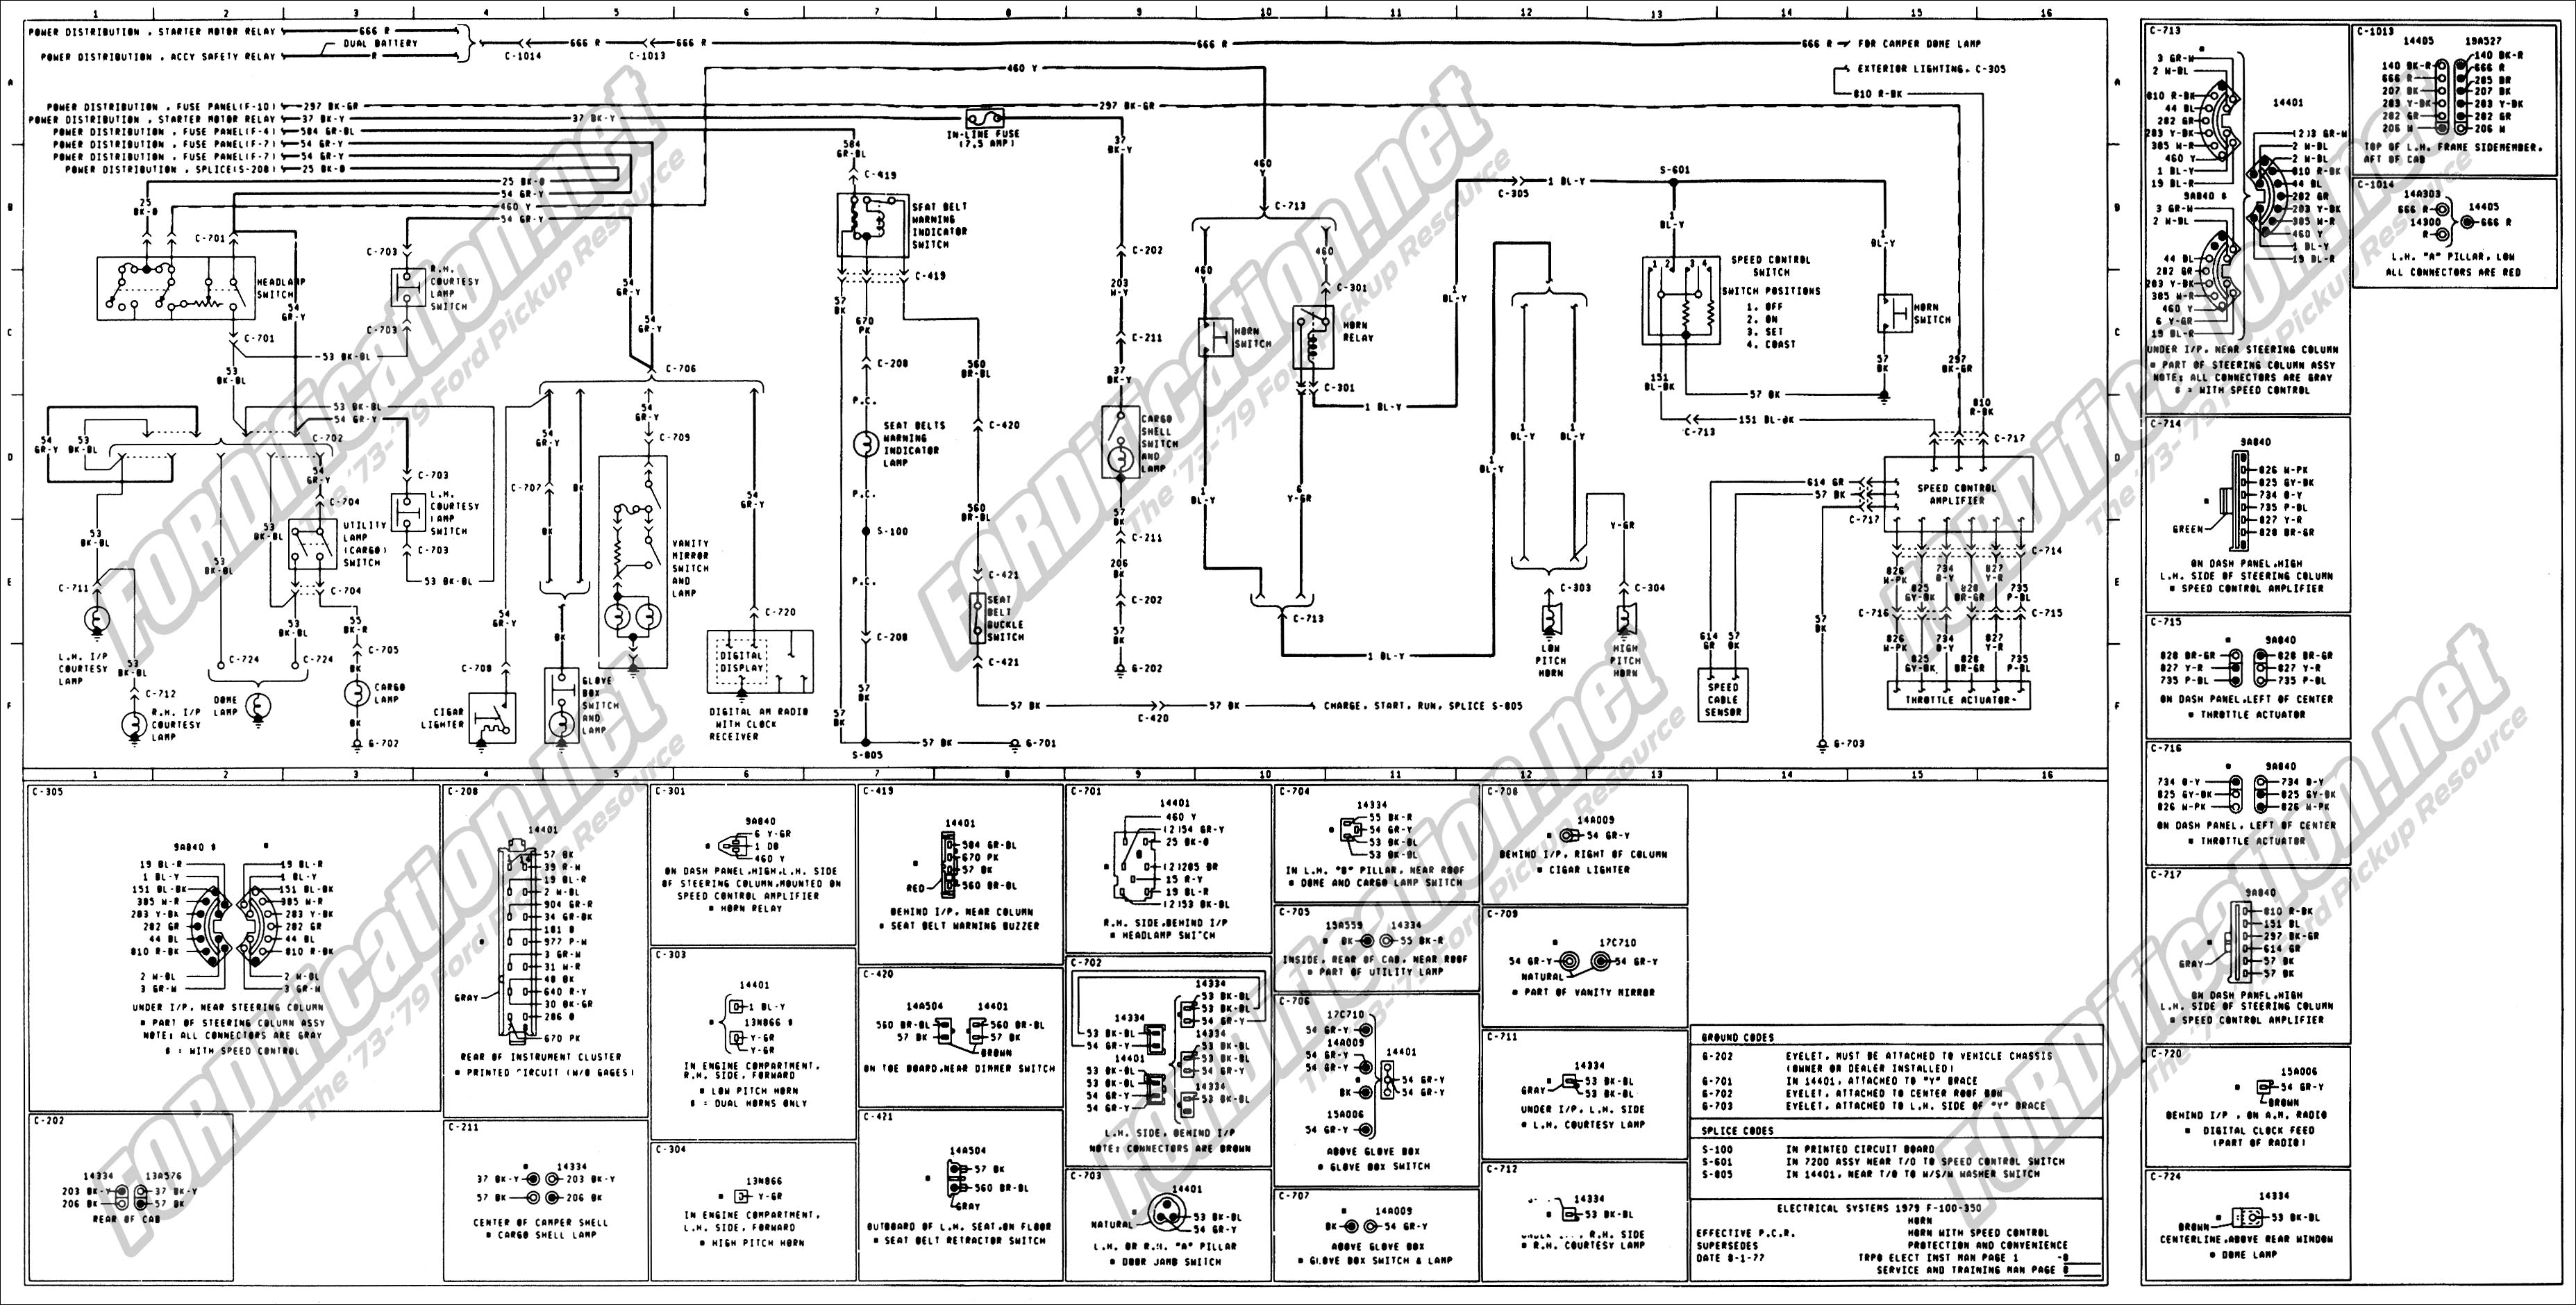 1976 Ford F150 Wiring Diagram Wiring Diagram Corsa Corsa Pasticceriagele It